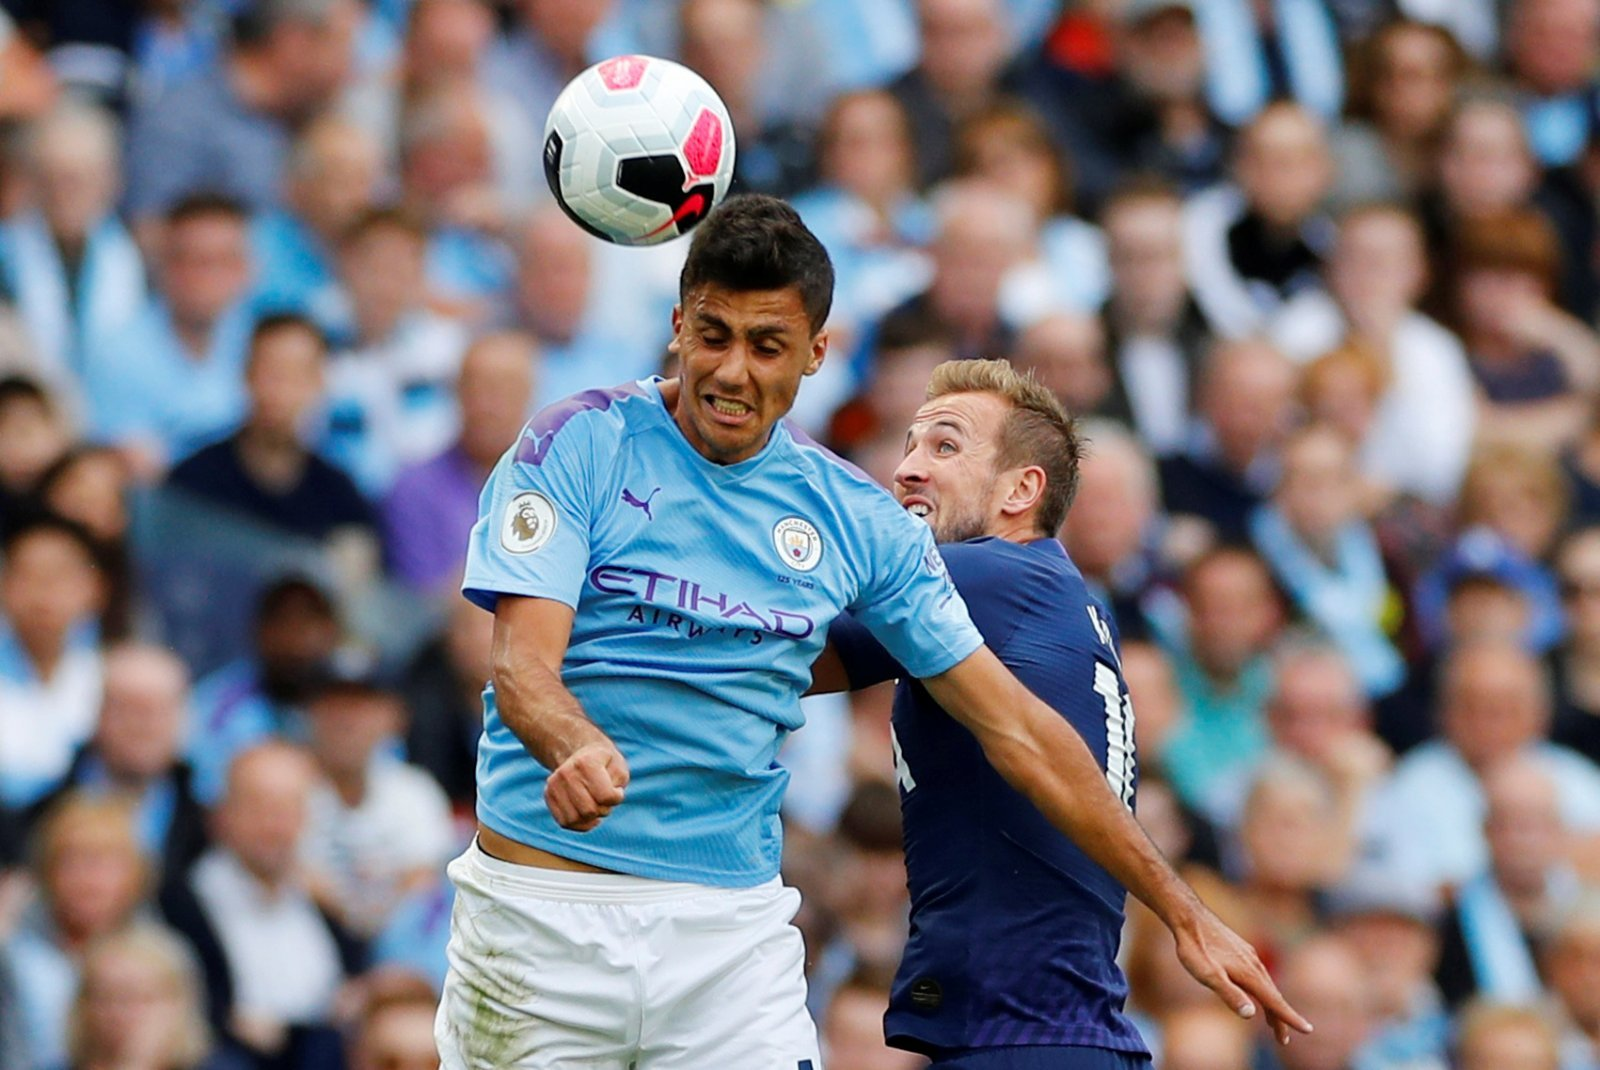 Unsung Hero: Manchester City's Rodri continues impressive start to life at the Etihad